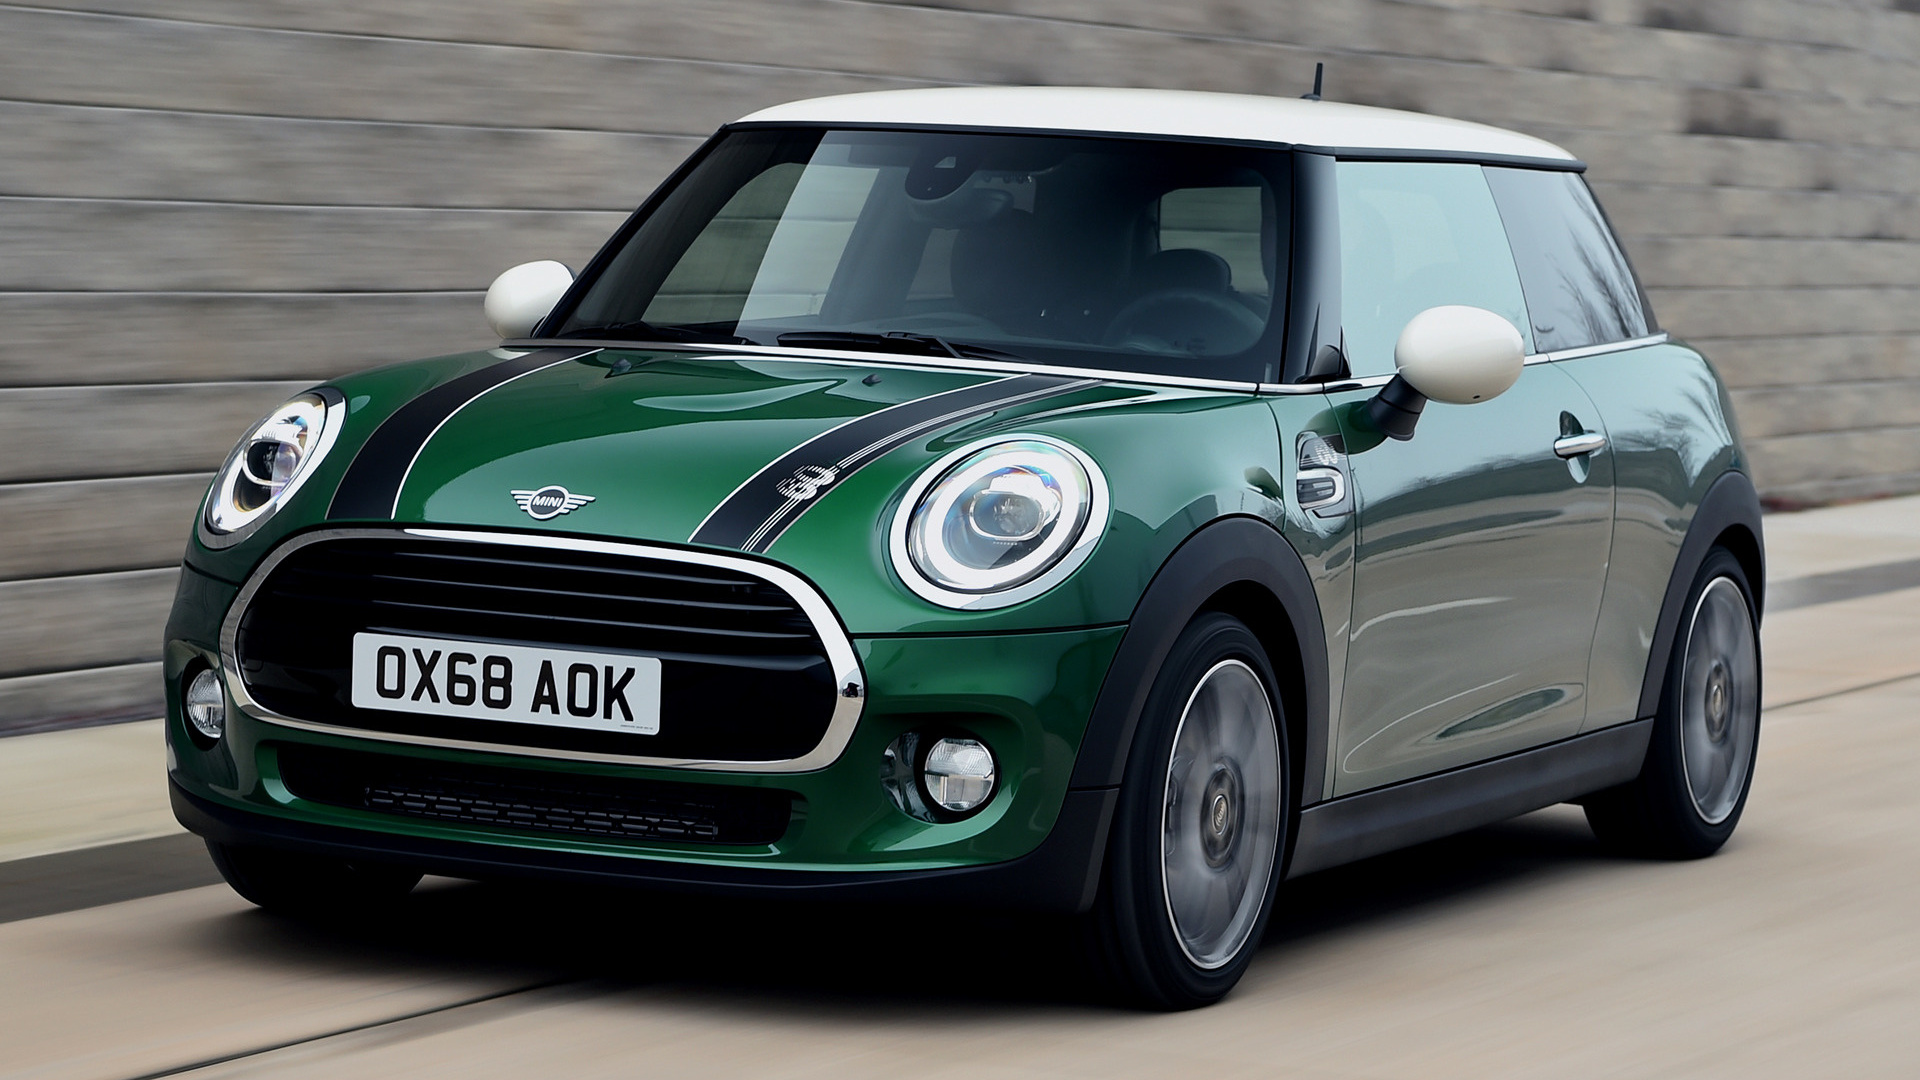 2019 Mini Cooper 60 Years Edition [3-door] - Wallpapers and HD Images | Car Pixel